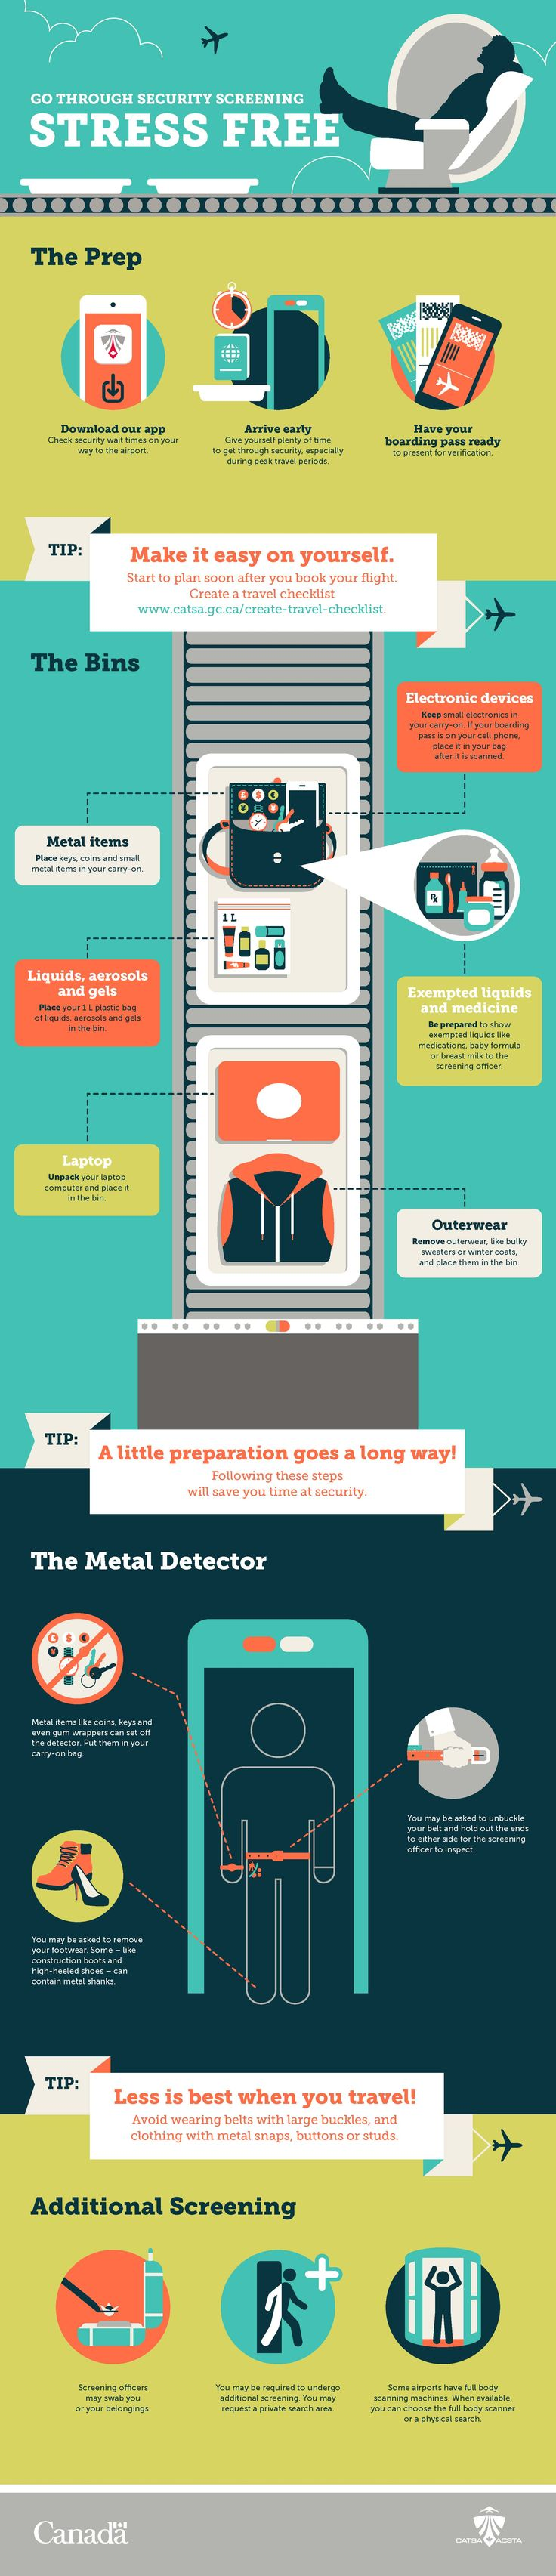 Airport Security Tips - get through the airport faster with these tips.